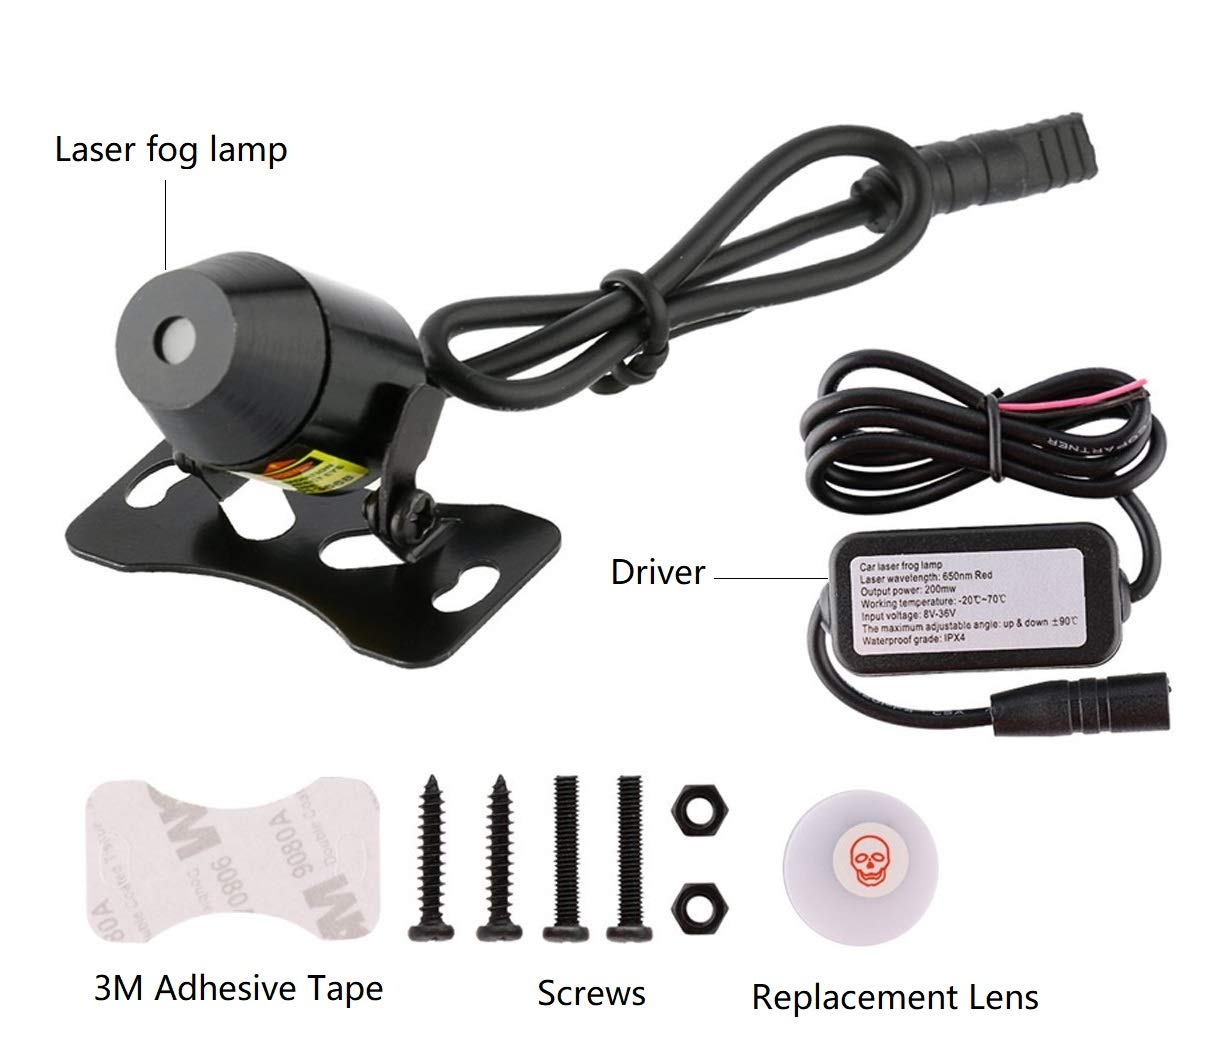 Einskey Laser Lights For Cars Universal Auto Rear End Led Flasher 12v Headlight Strobe Flashing Circuit Motorcycle Car Tail Alarm Fog Lamp And Motorcycles Brake Parking Anti Collision Safety Warning